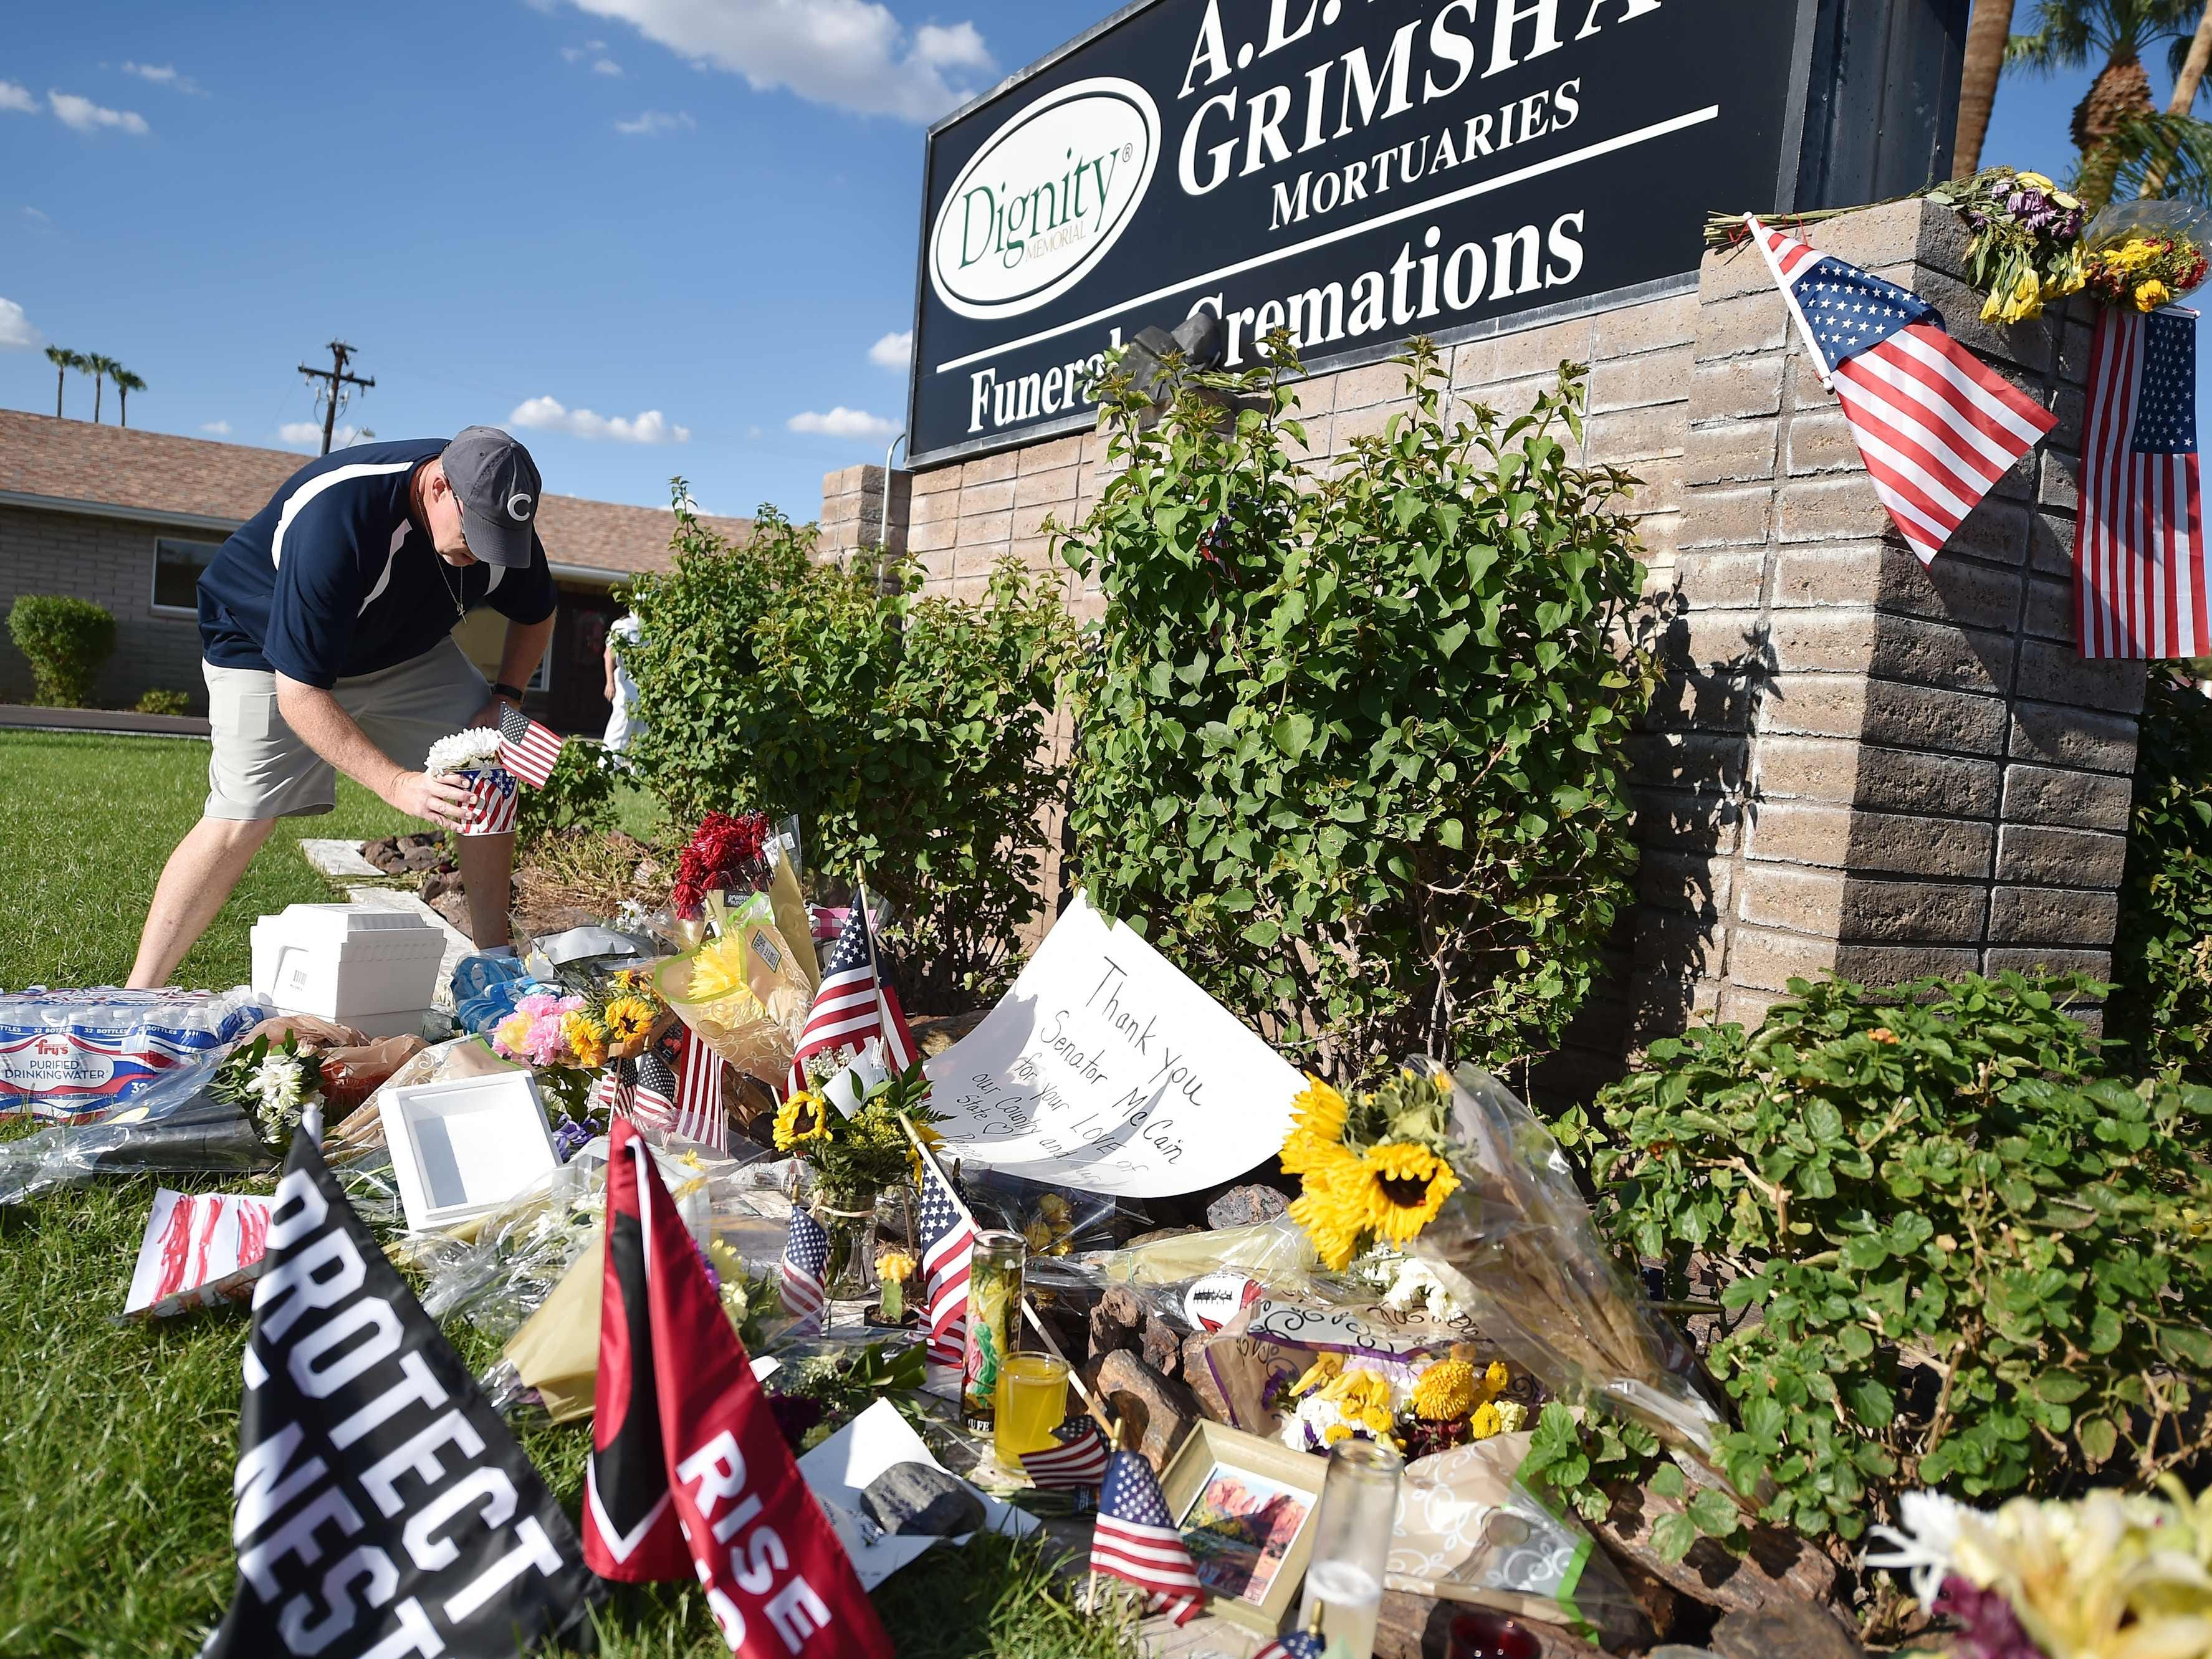 Tim Combs leaves flowers at a makeshift memorial for US Senator John McCain, outside a mortuary home in Phoenix, Arizona, on August 26, 2018. - McCain, who died on August 25 at age 81, will lie in state in the Capitol Rotunda in Phoenix and receive a full dress funeral service at the Washington National Cathedral. (Photo by Robyn Beck / AFP)ROBYN BECK/AFP/Getty Images ORG XMIT: Veteran U ORIG FILE ID: AFP_18M6F7